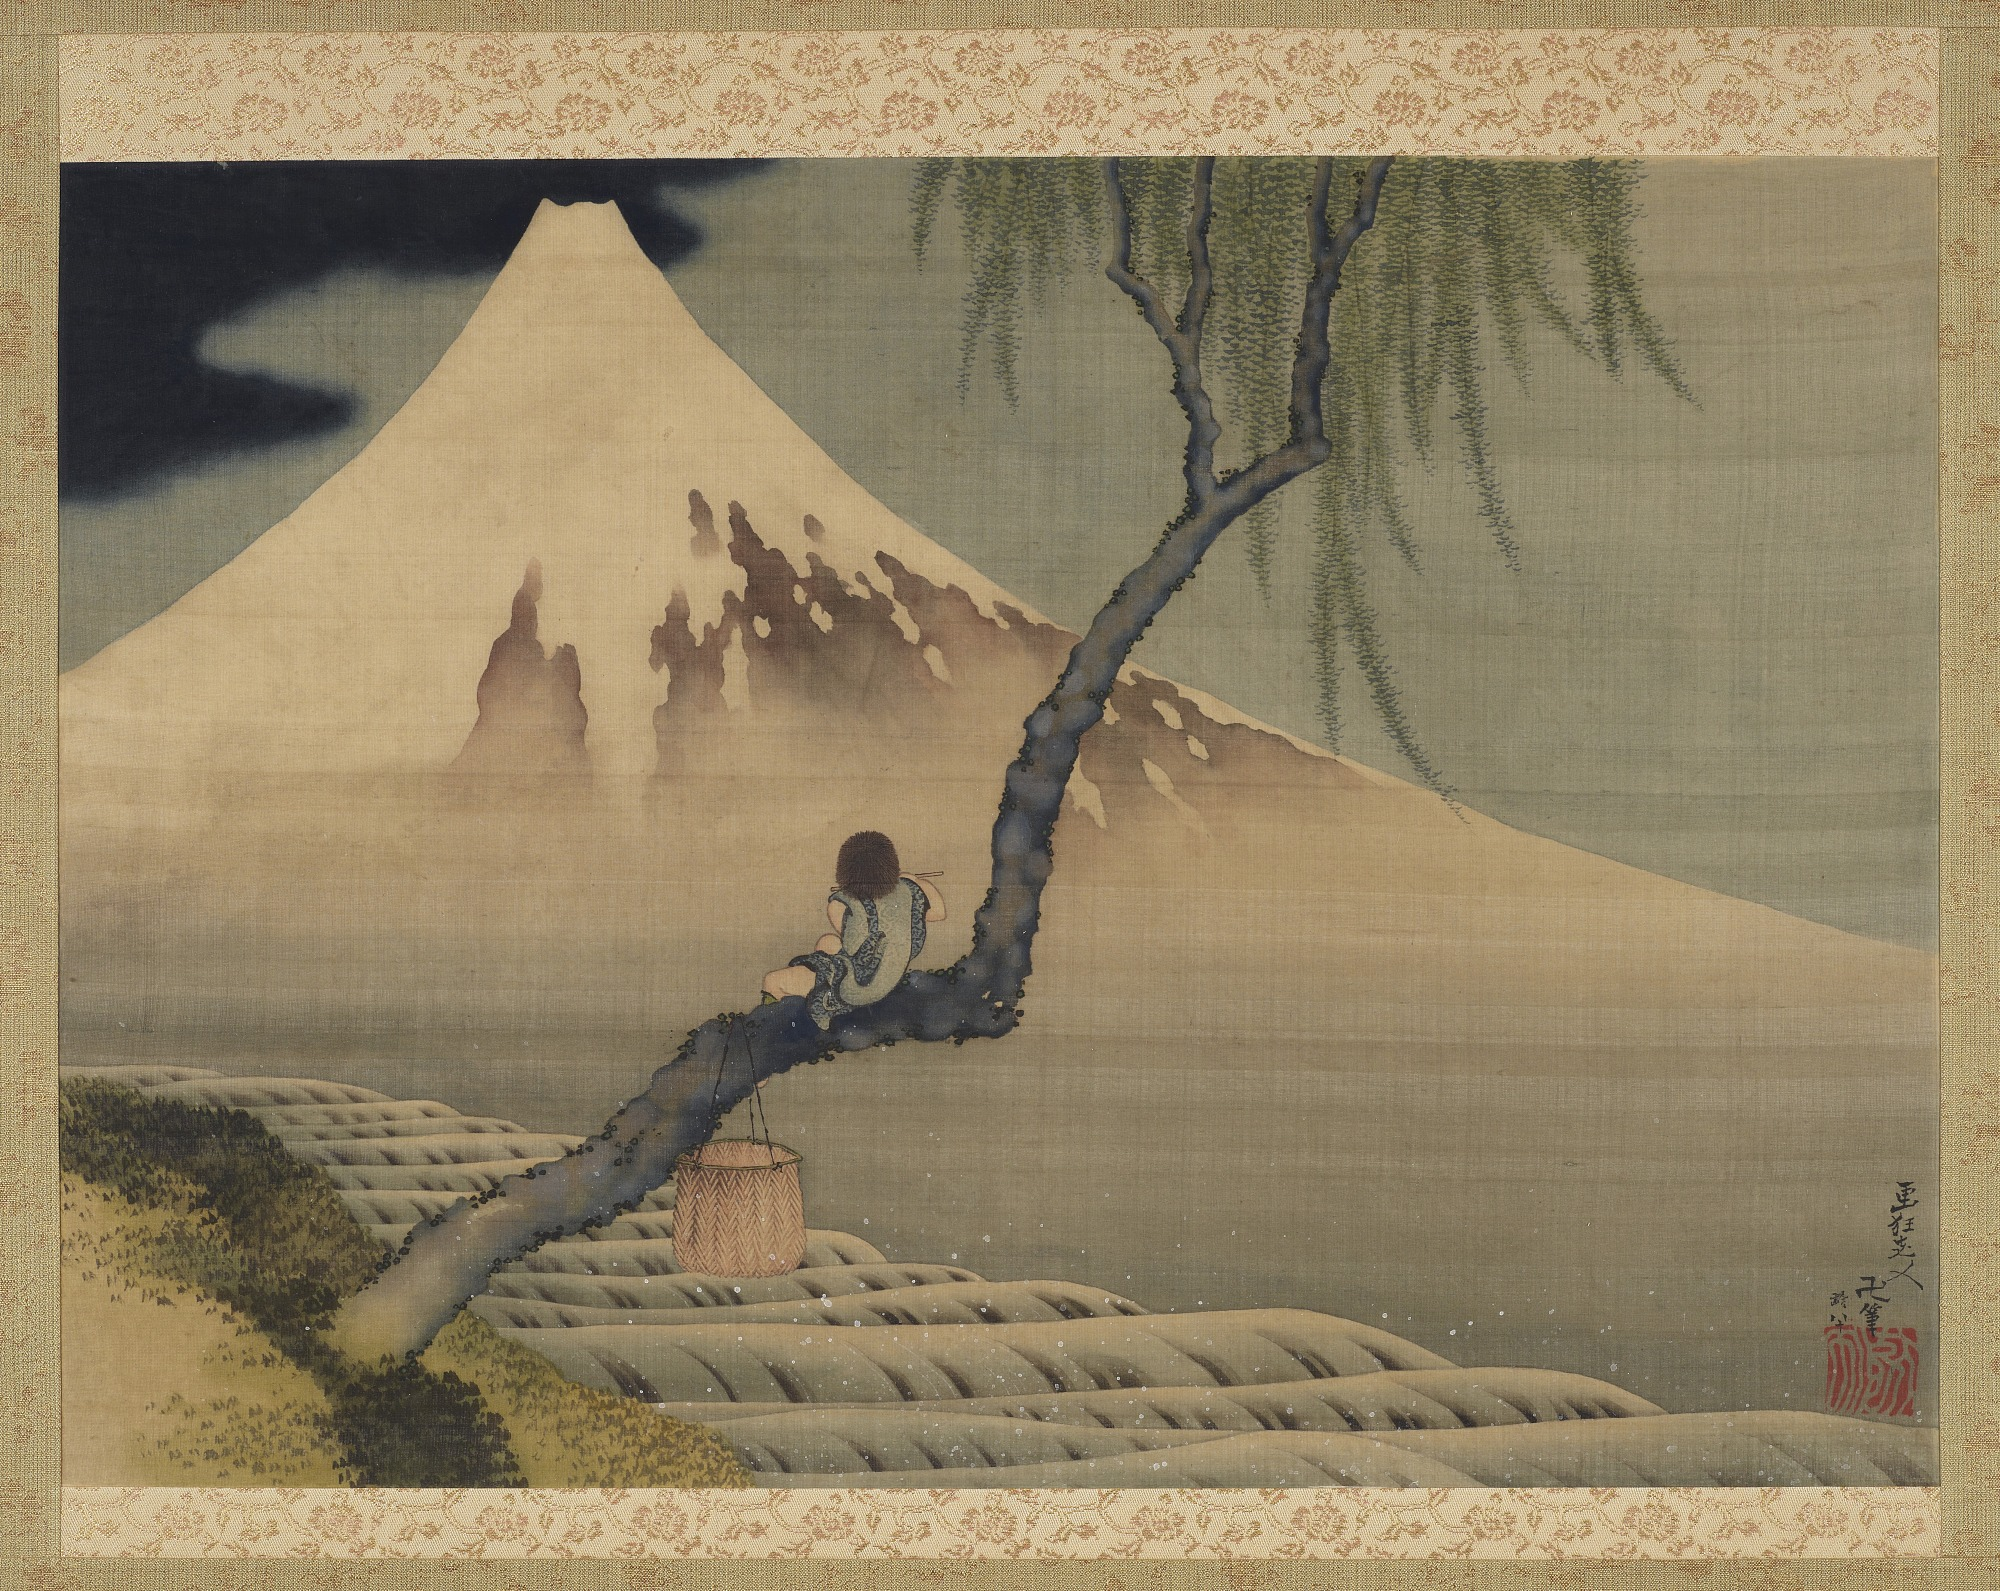 Boy Viewing Mount Fuji